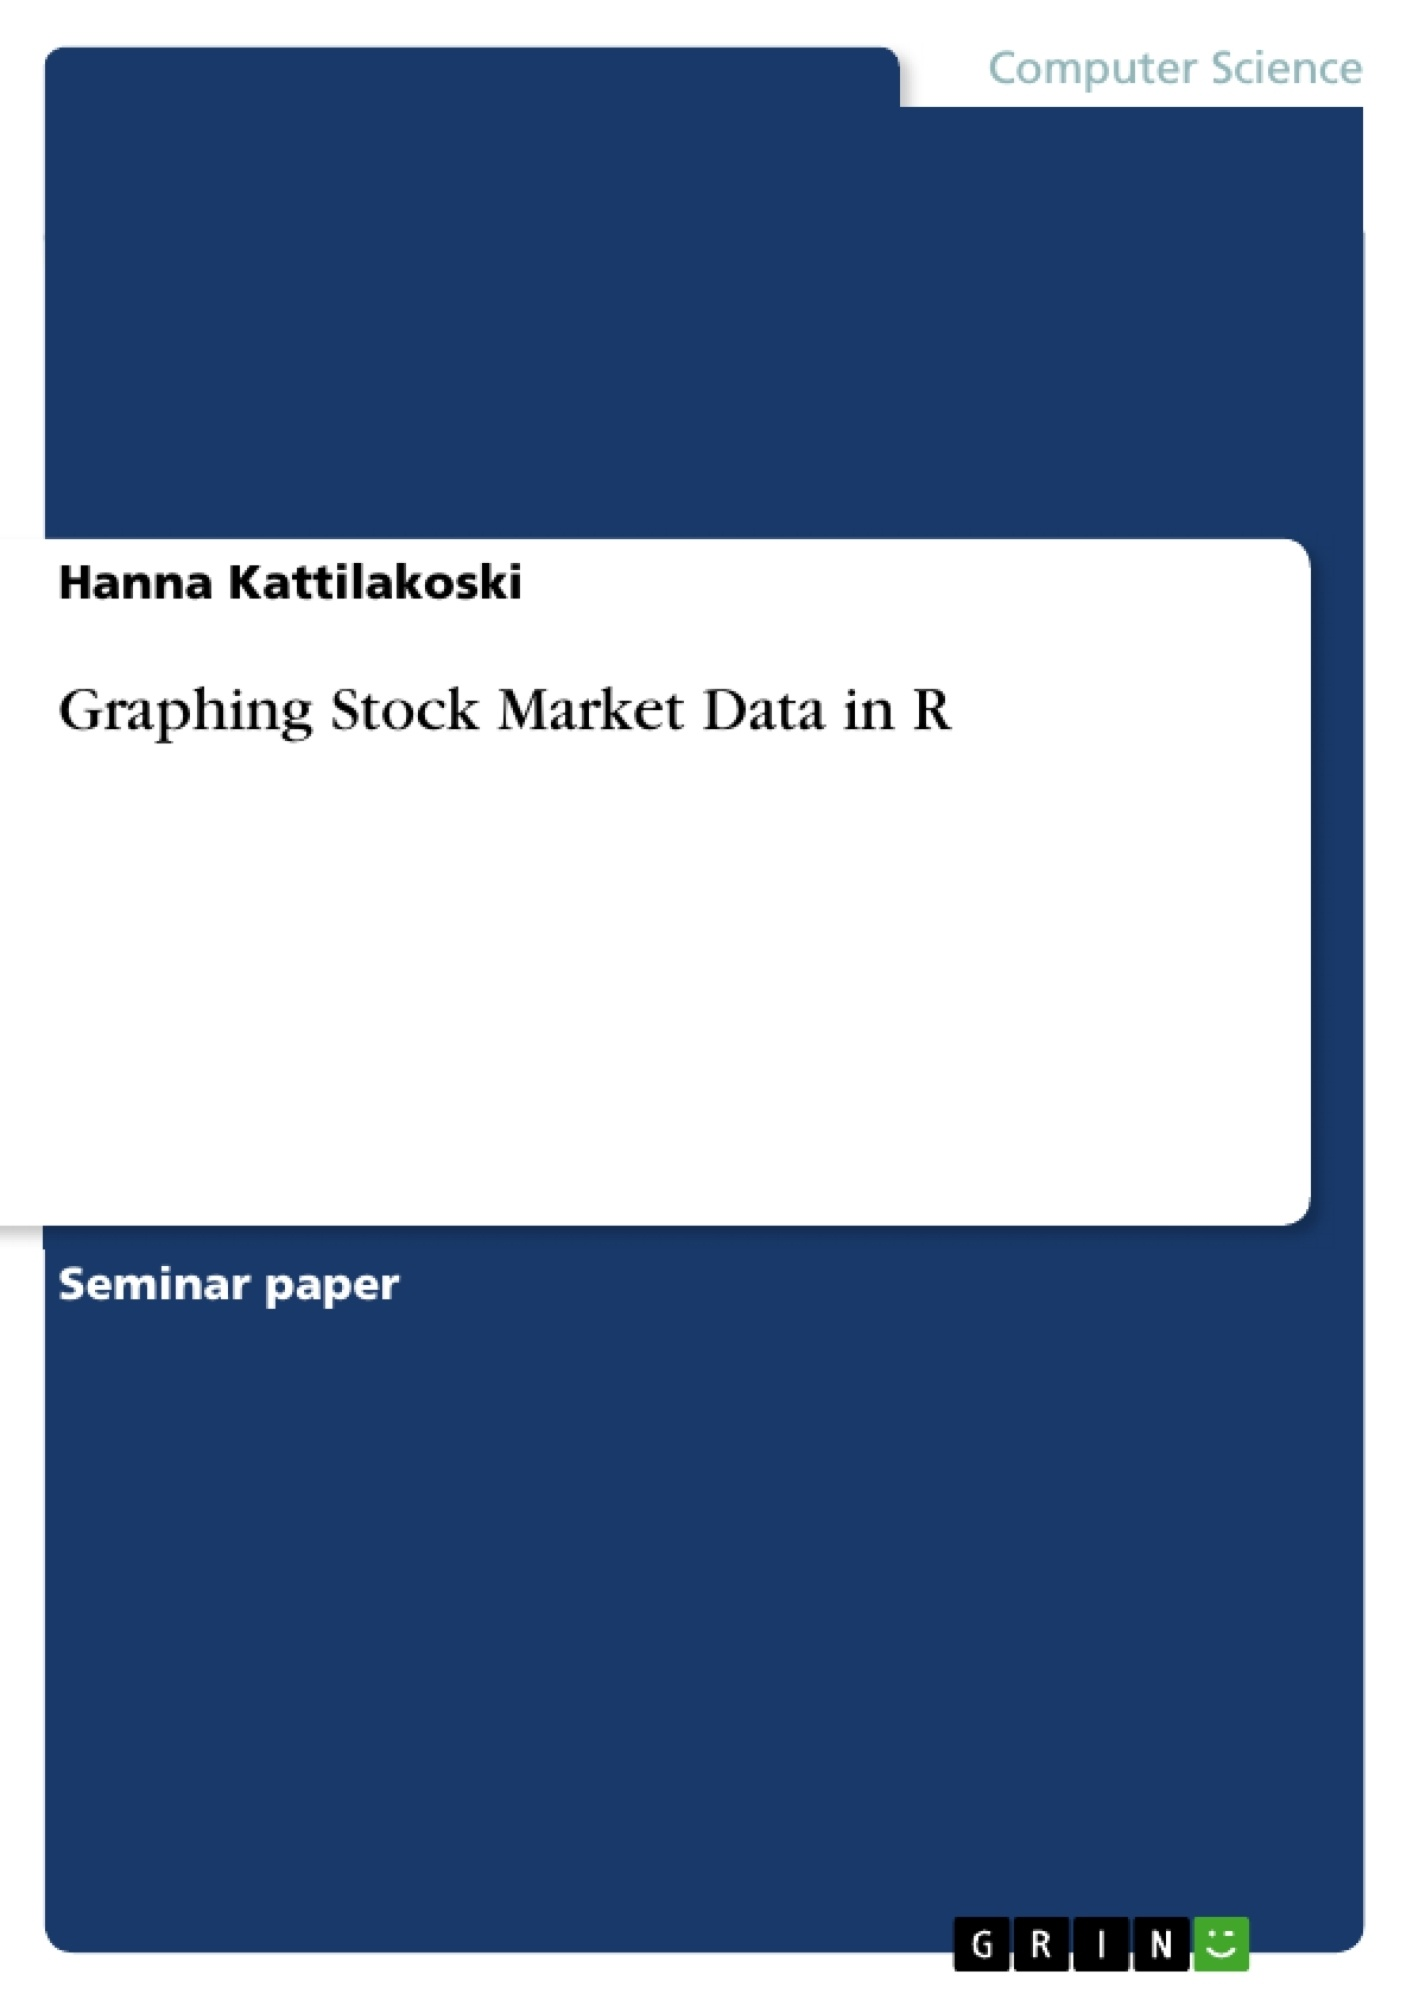 Title: Graphing Stock Market Data in R